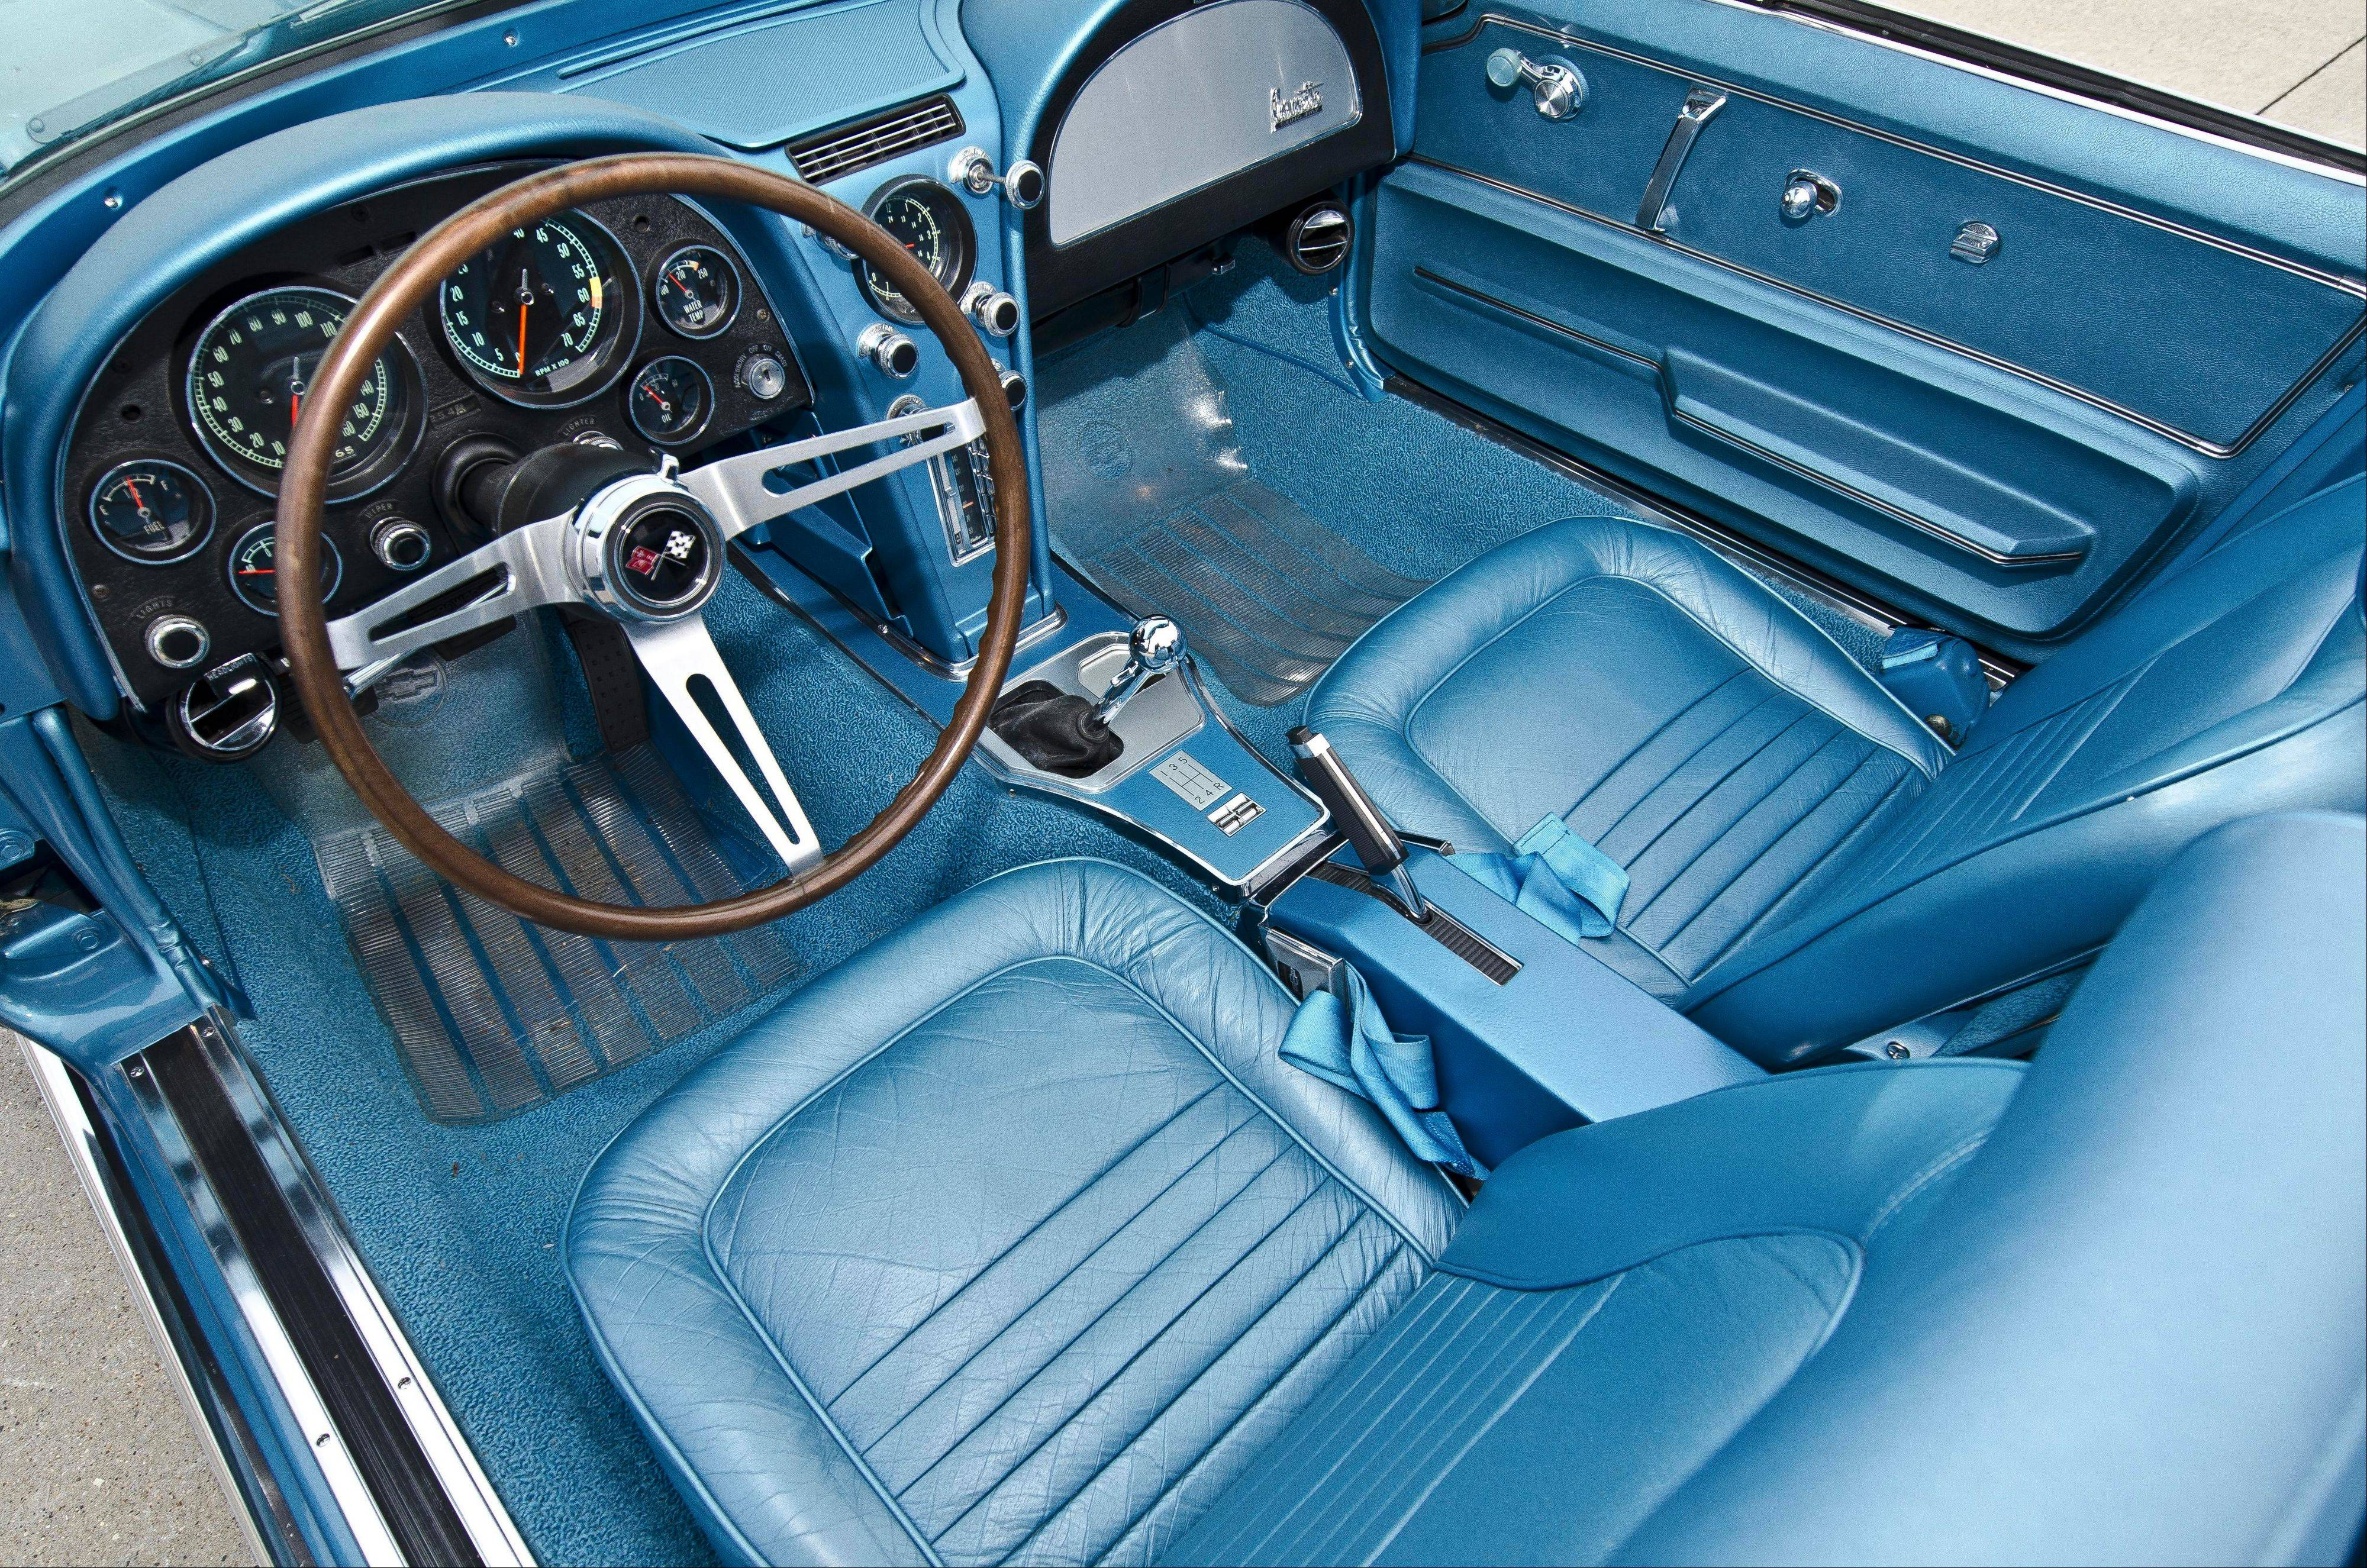 The interior matches the auto's Marina Blue paint.